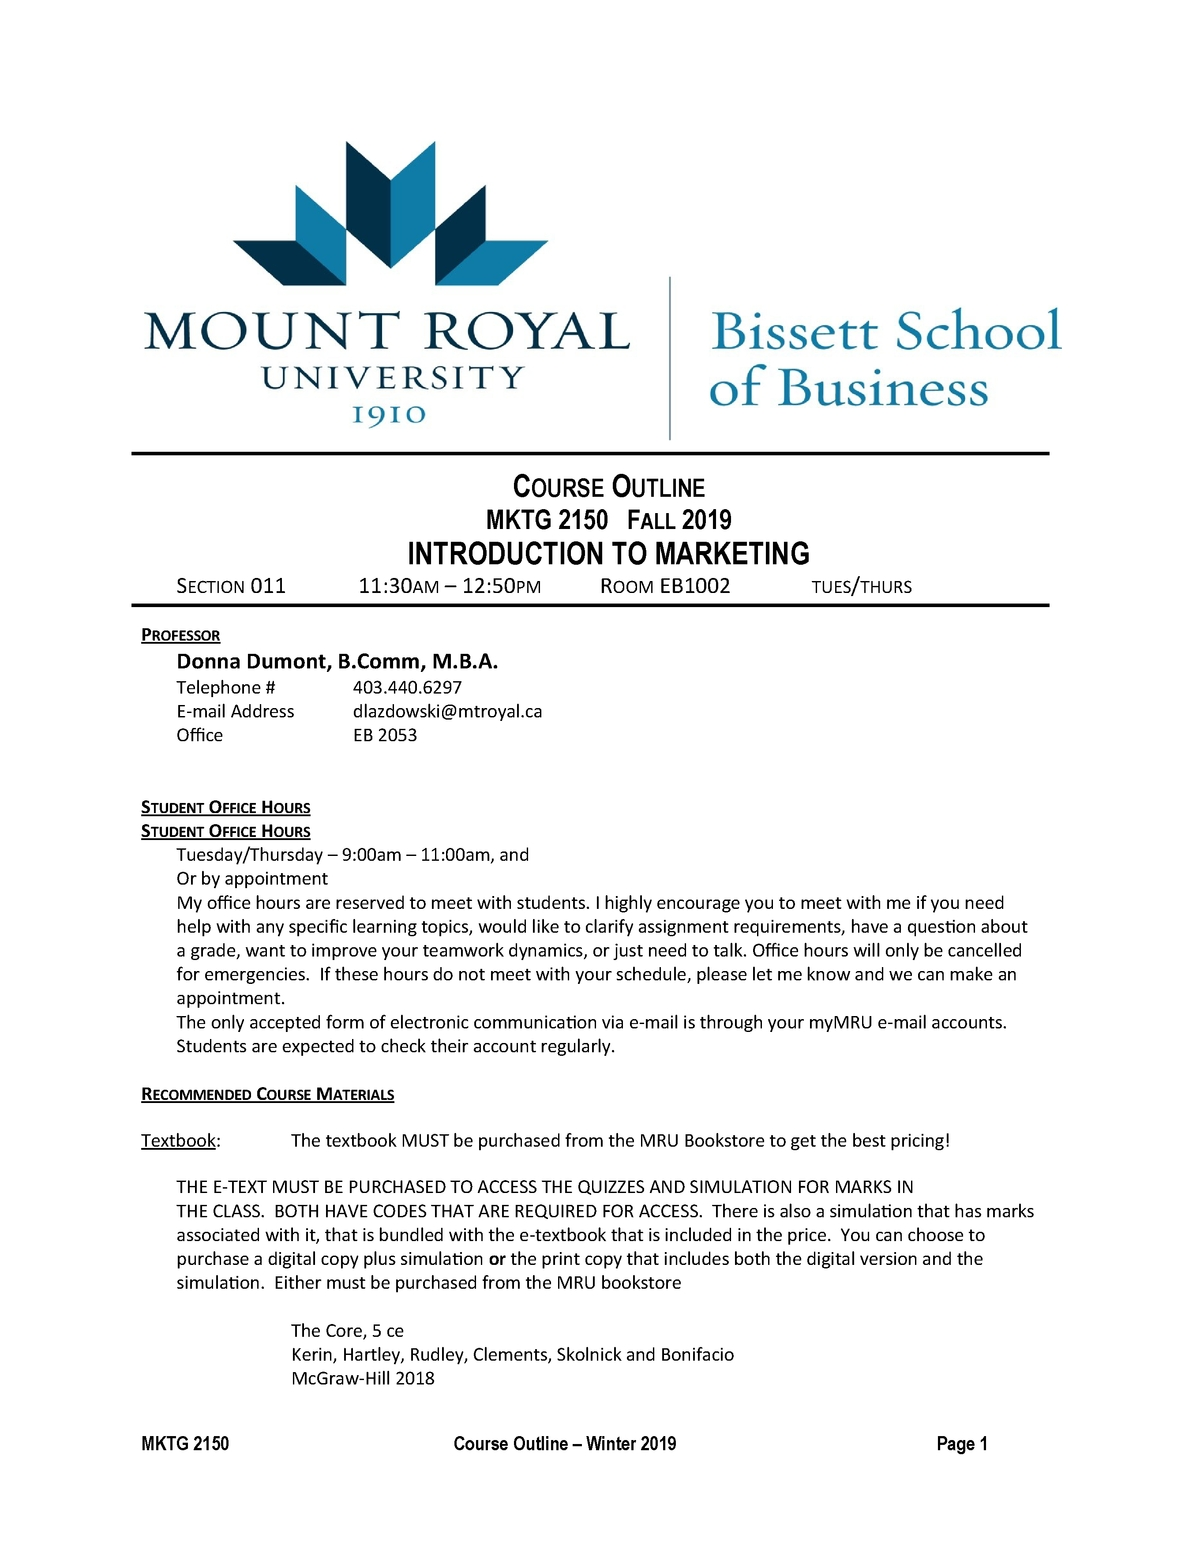 Donna 2150 Winter 2019 Course Outline - Mktg 2150 - Mru